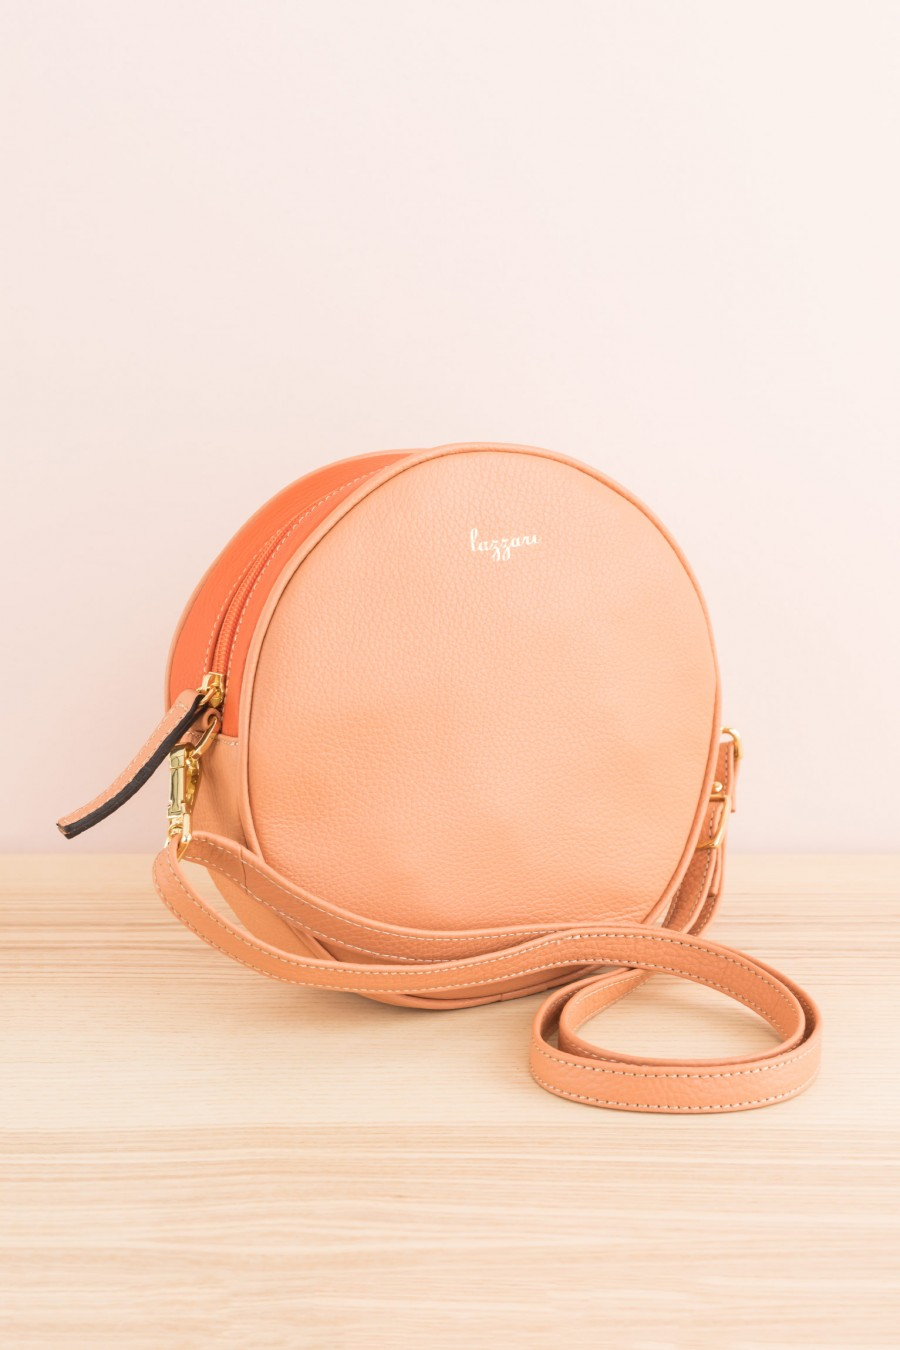 two-tone round bag with shoulder strap and zipper